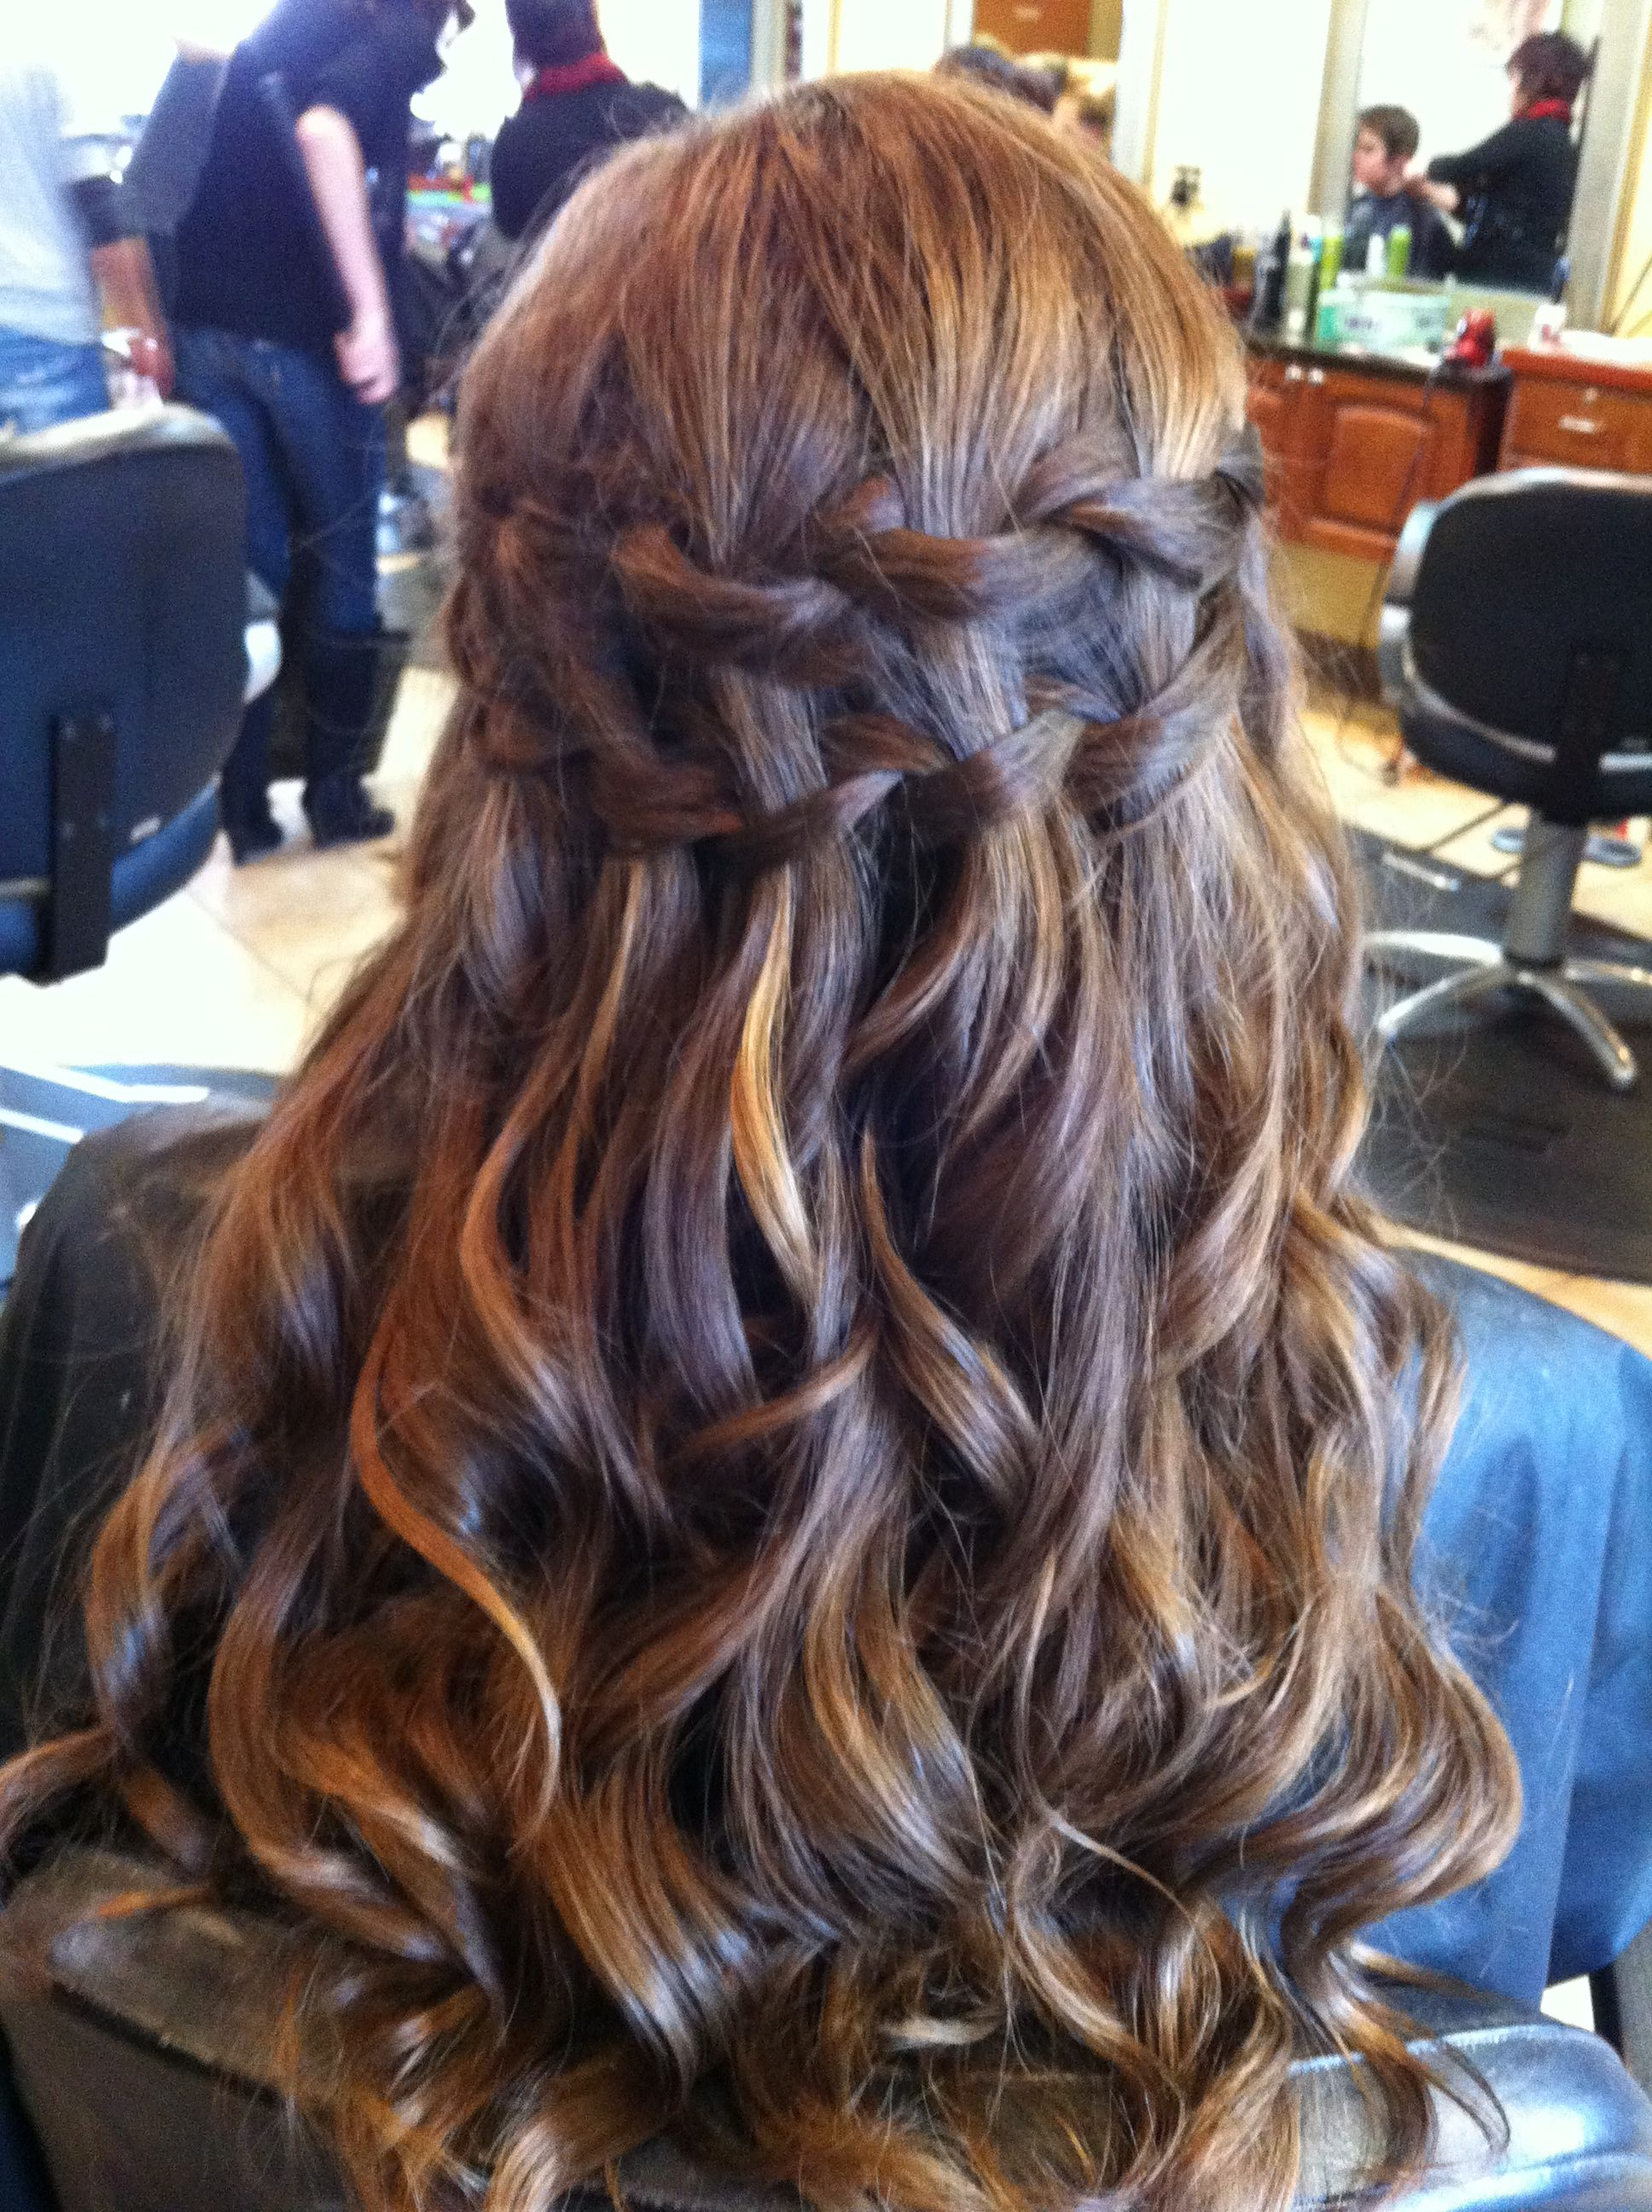 Double waterfall braid uci wish i could dothis nails makeup